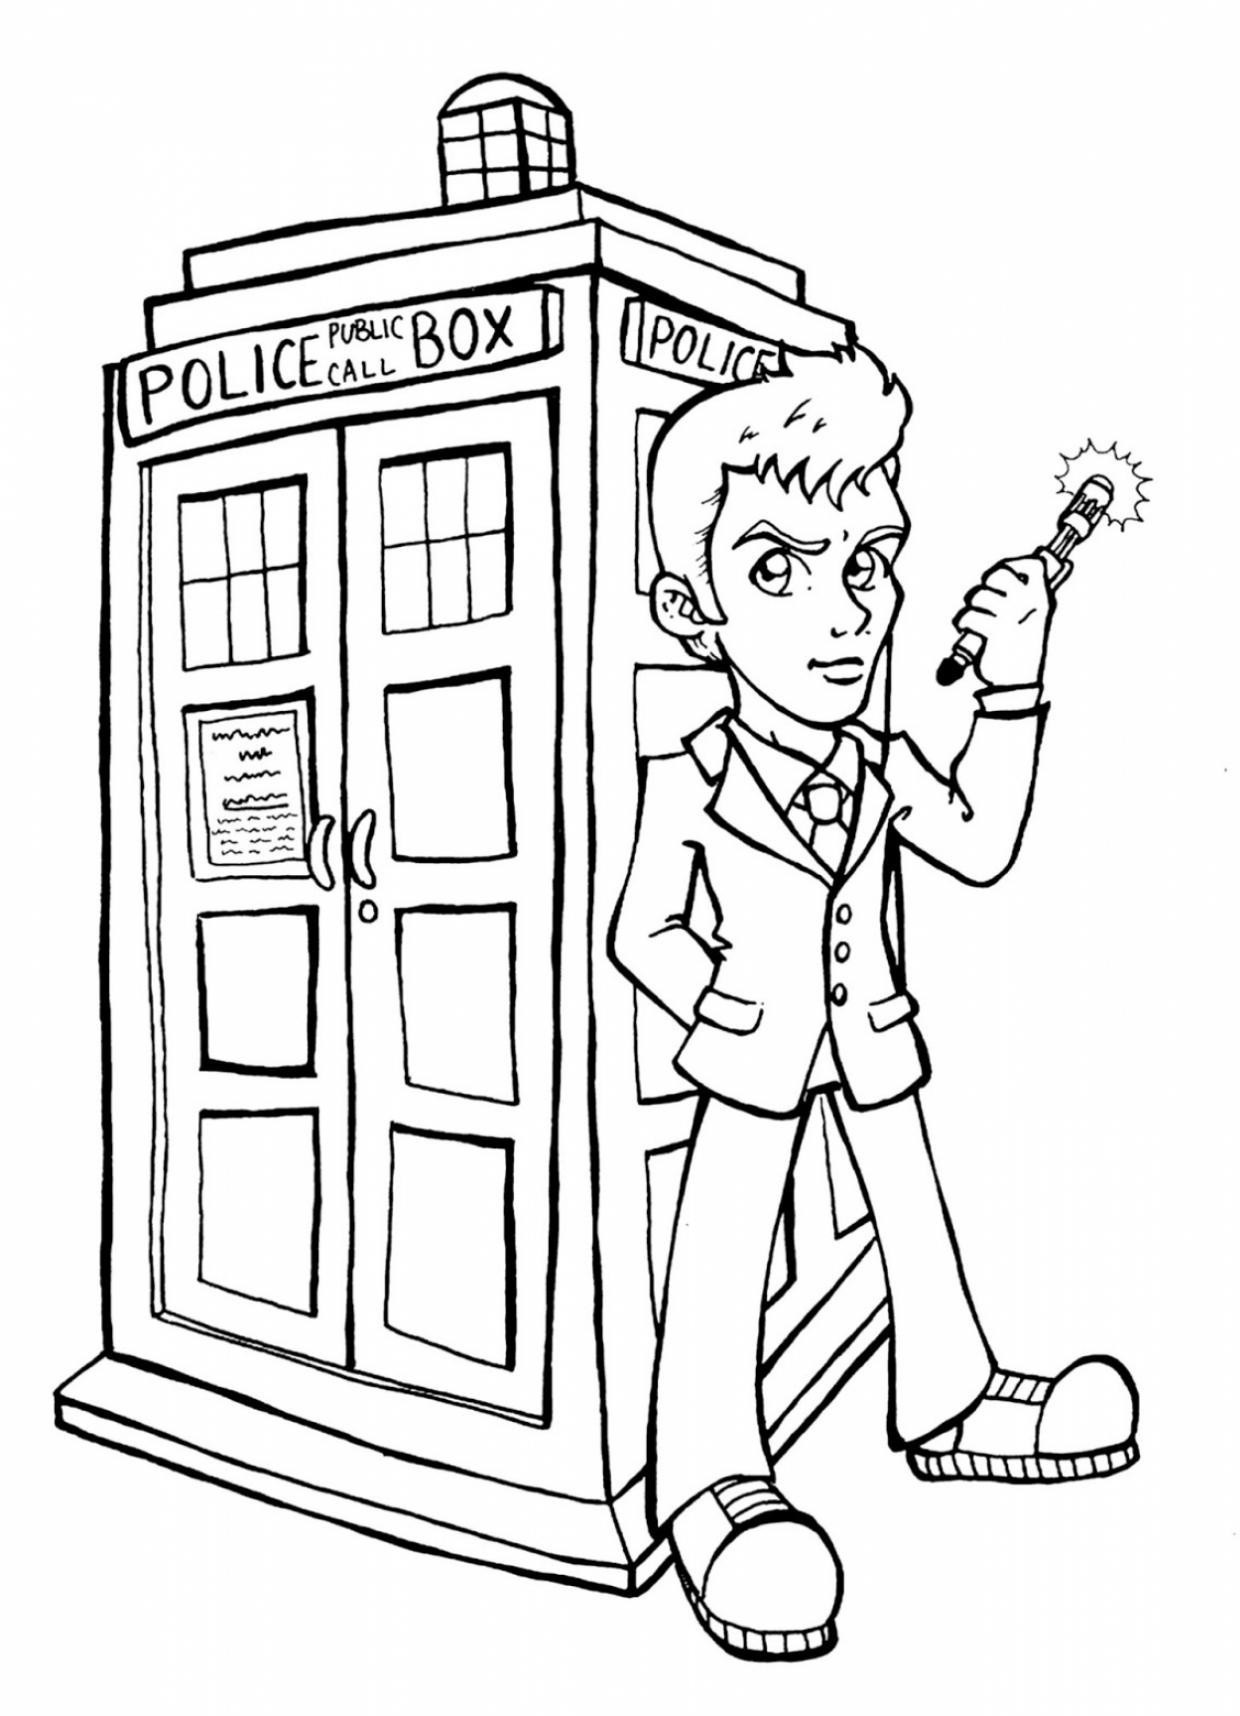 doctor who coloring pages for kids | Doctor Who Coloring Pages - Best Coloring Pages For Kids